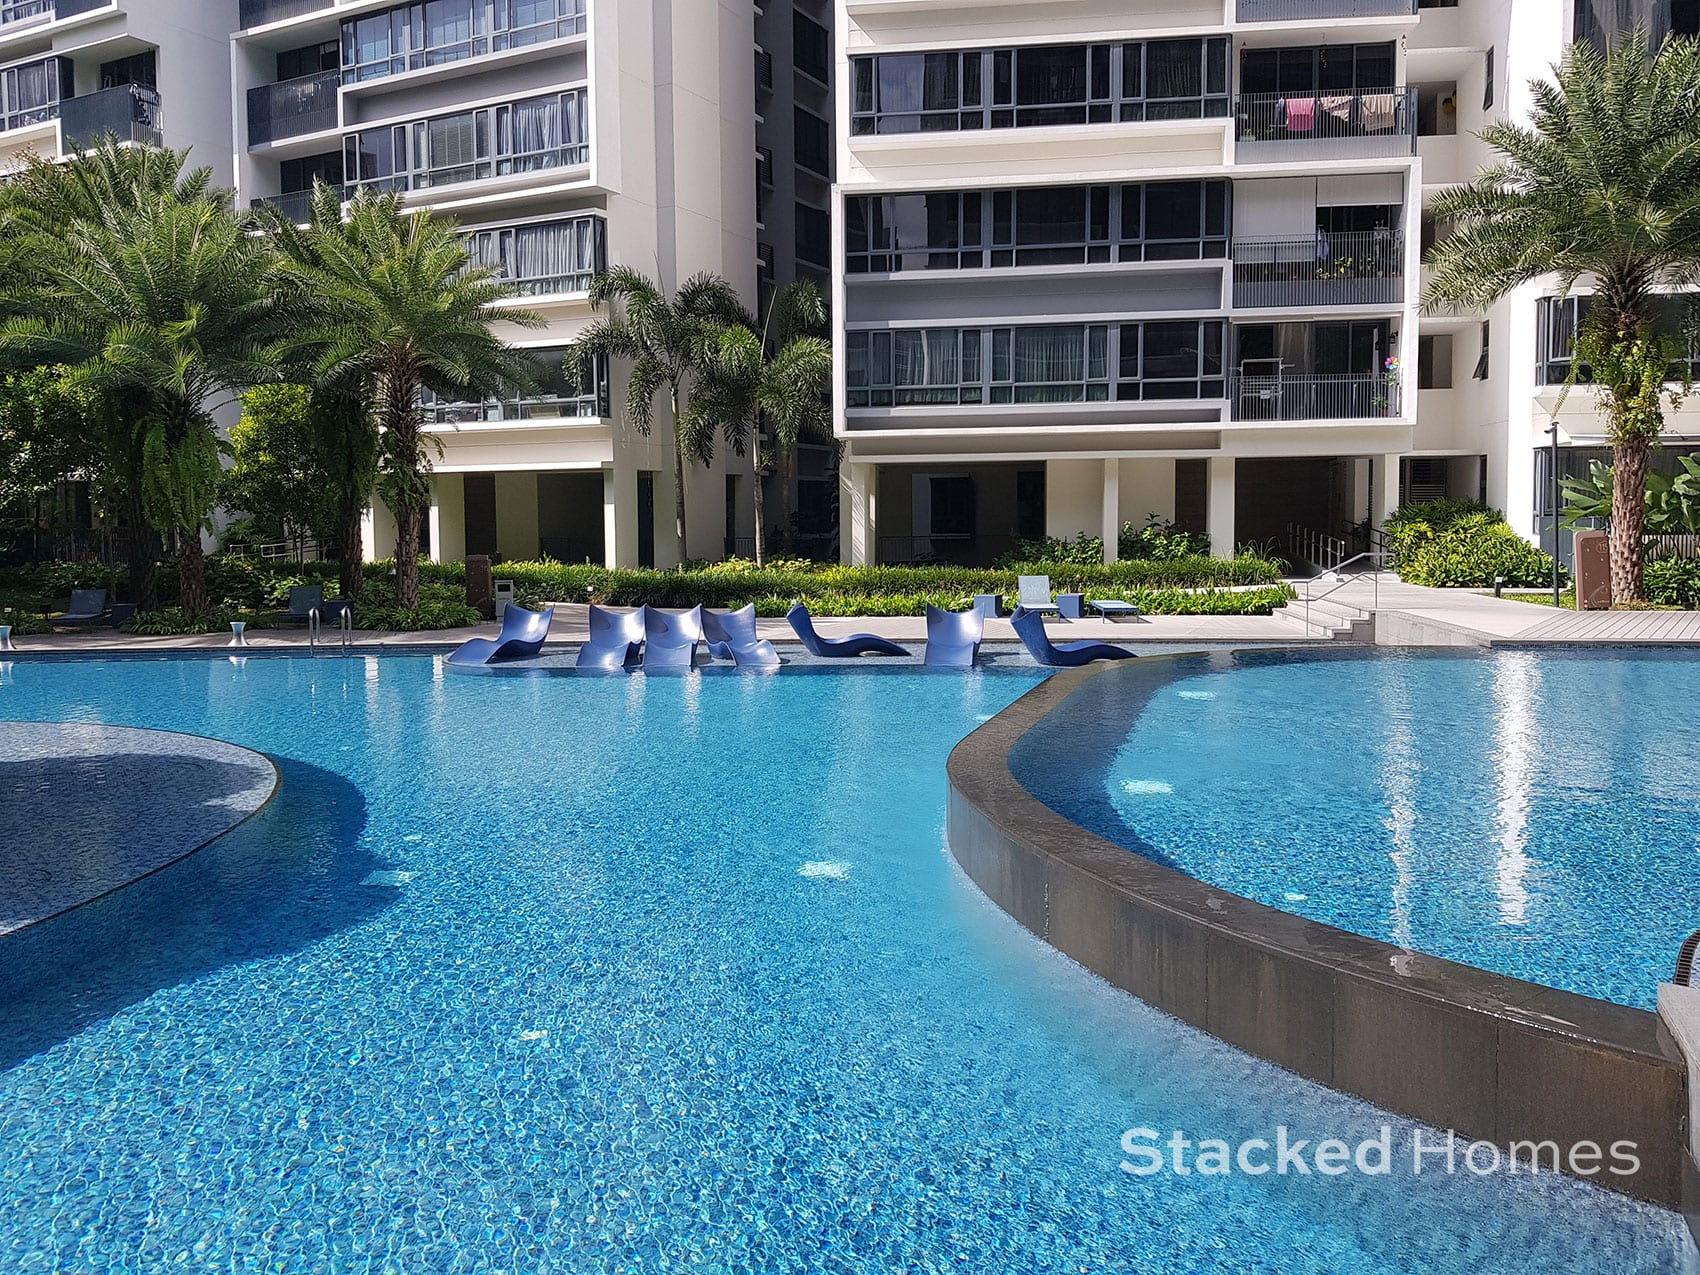 palette condo pool chairs